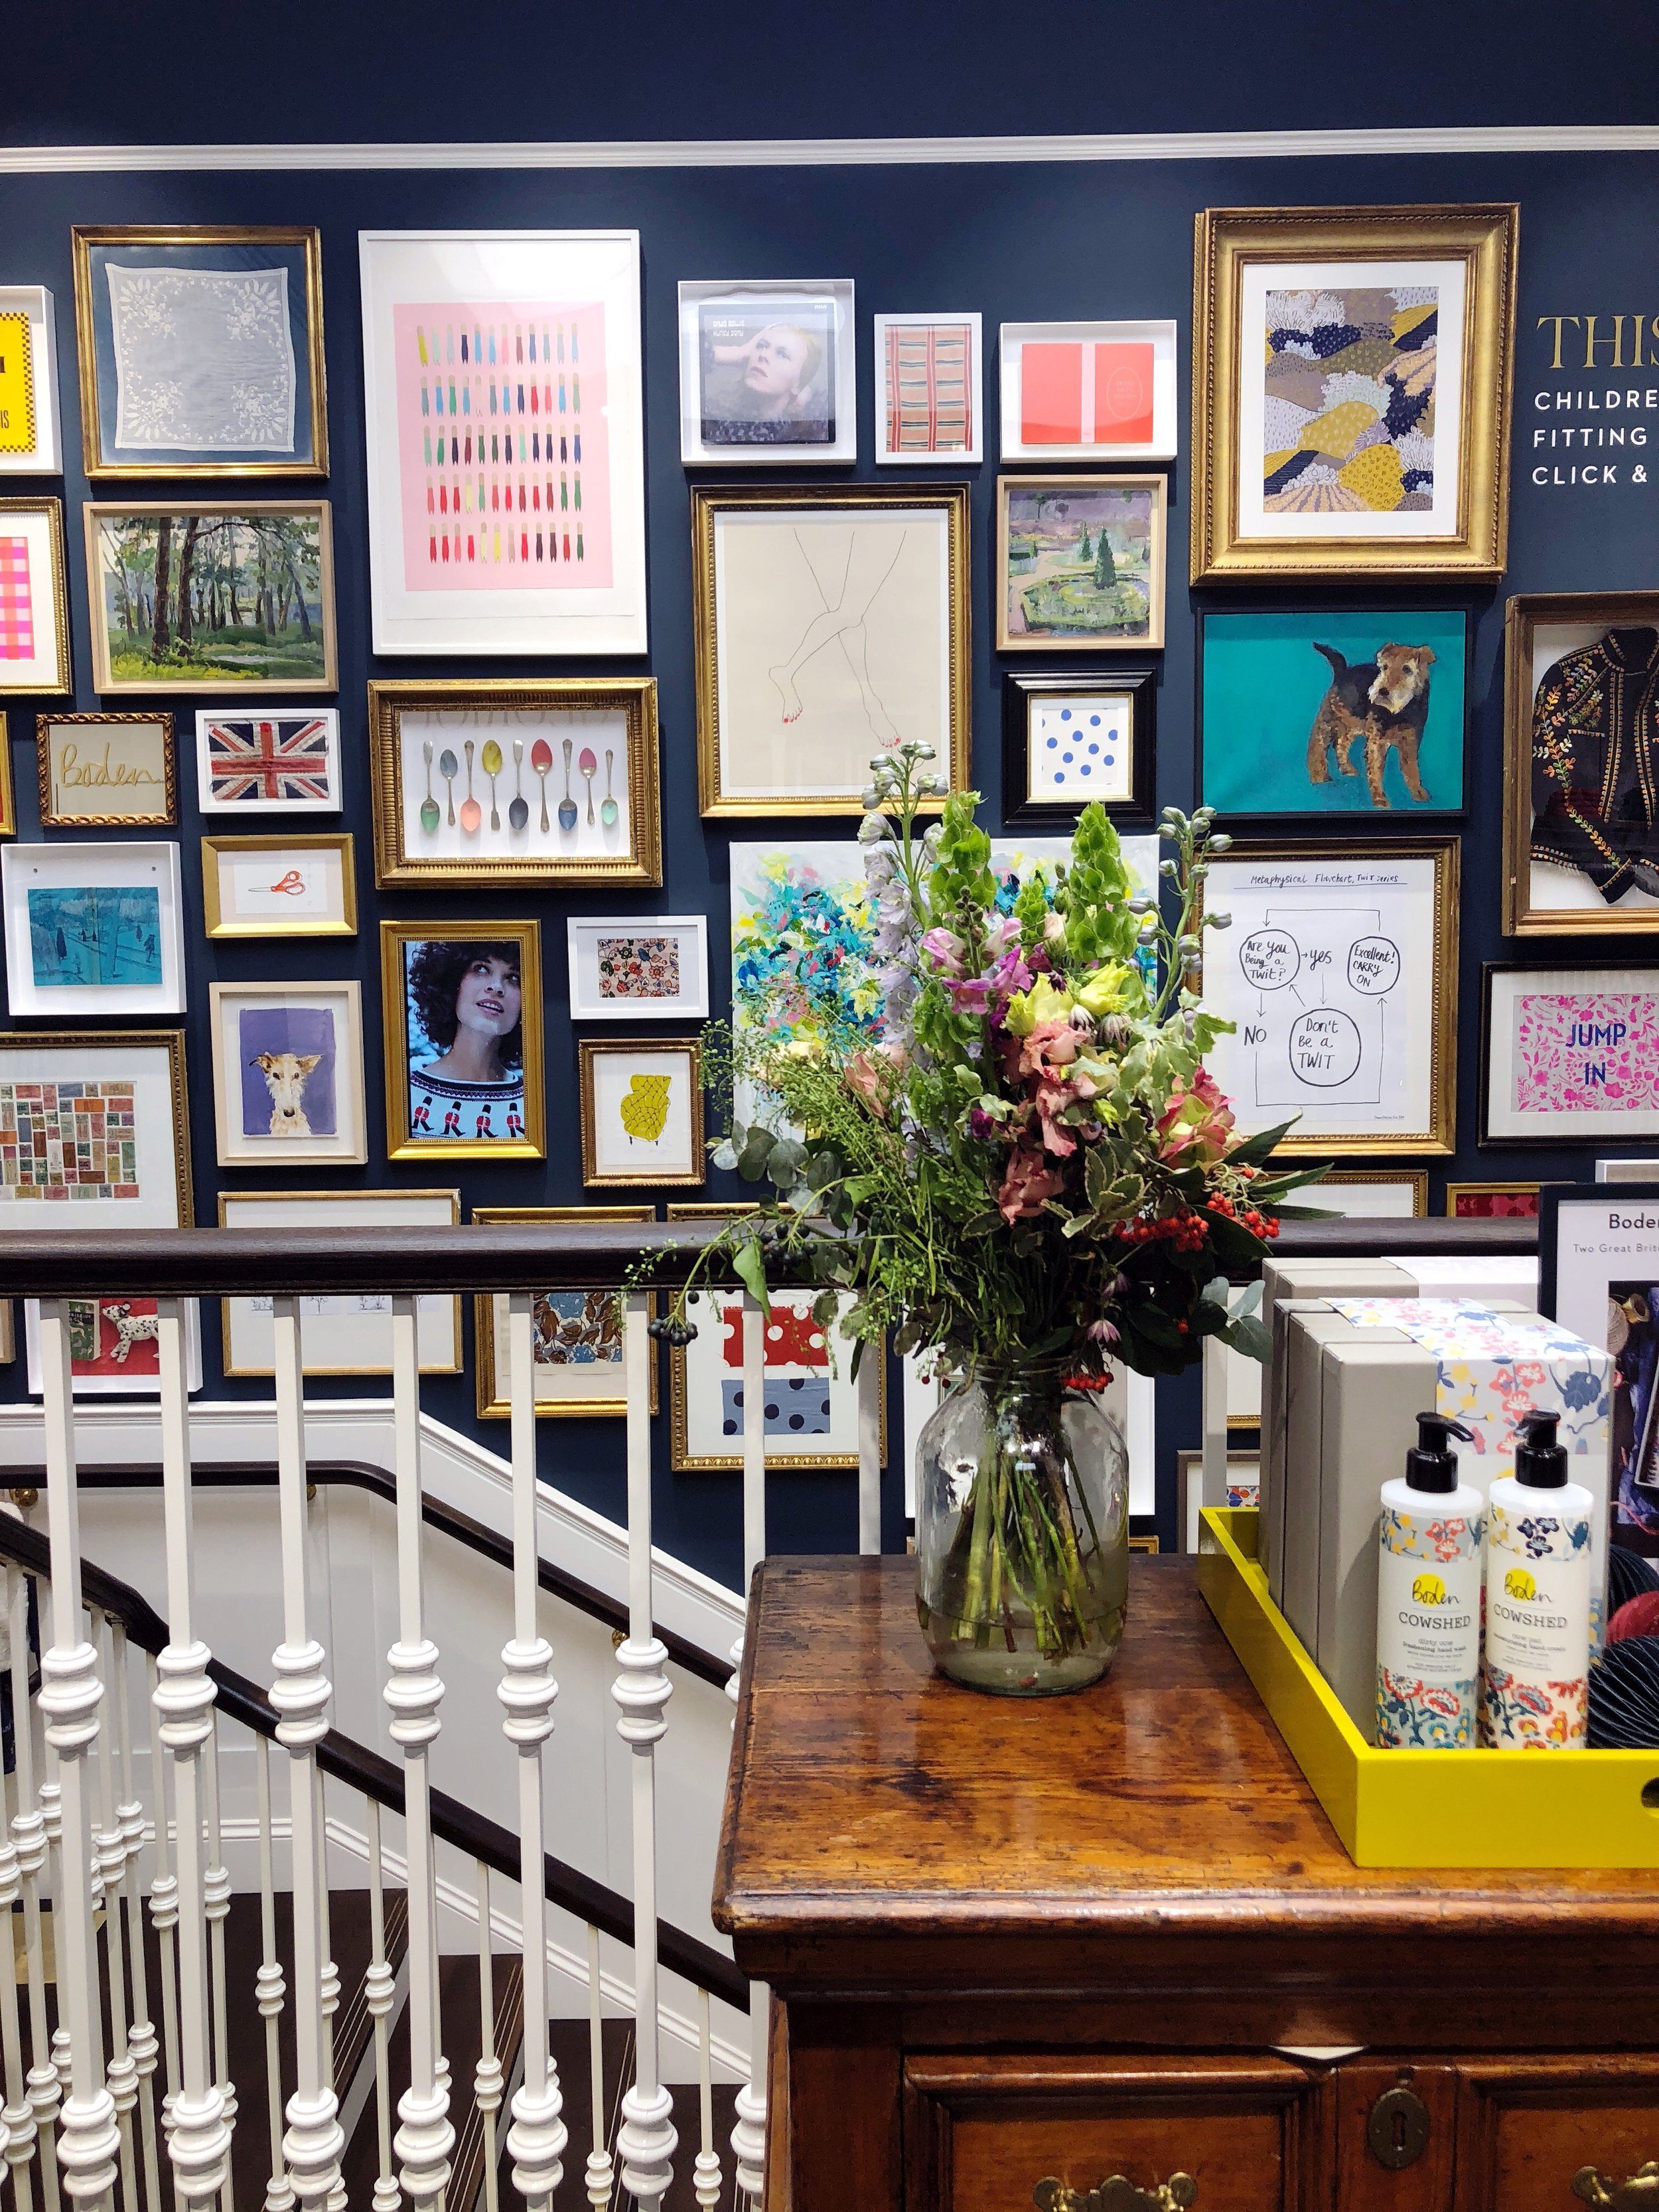 Boden store, London : The Quinskis